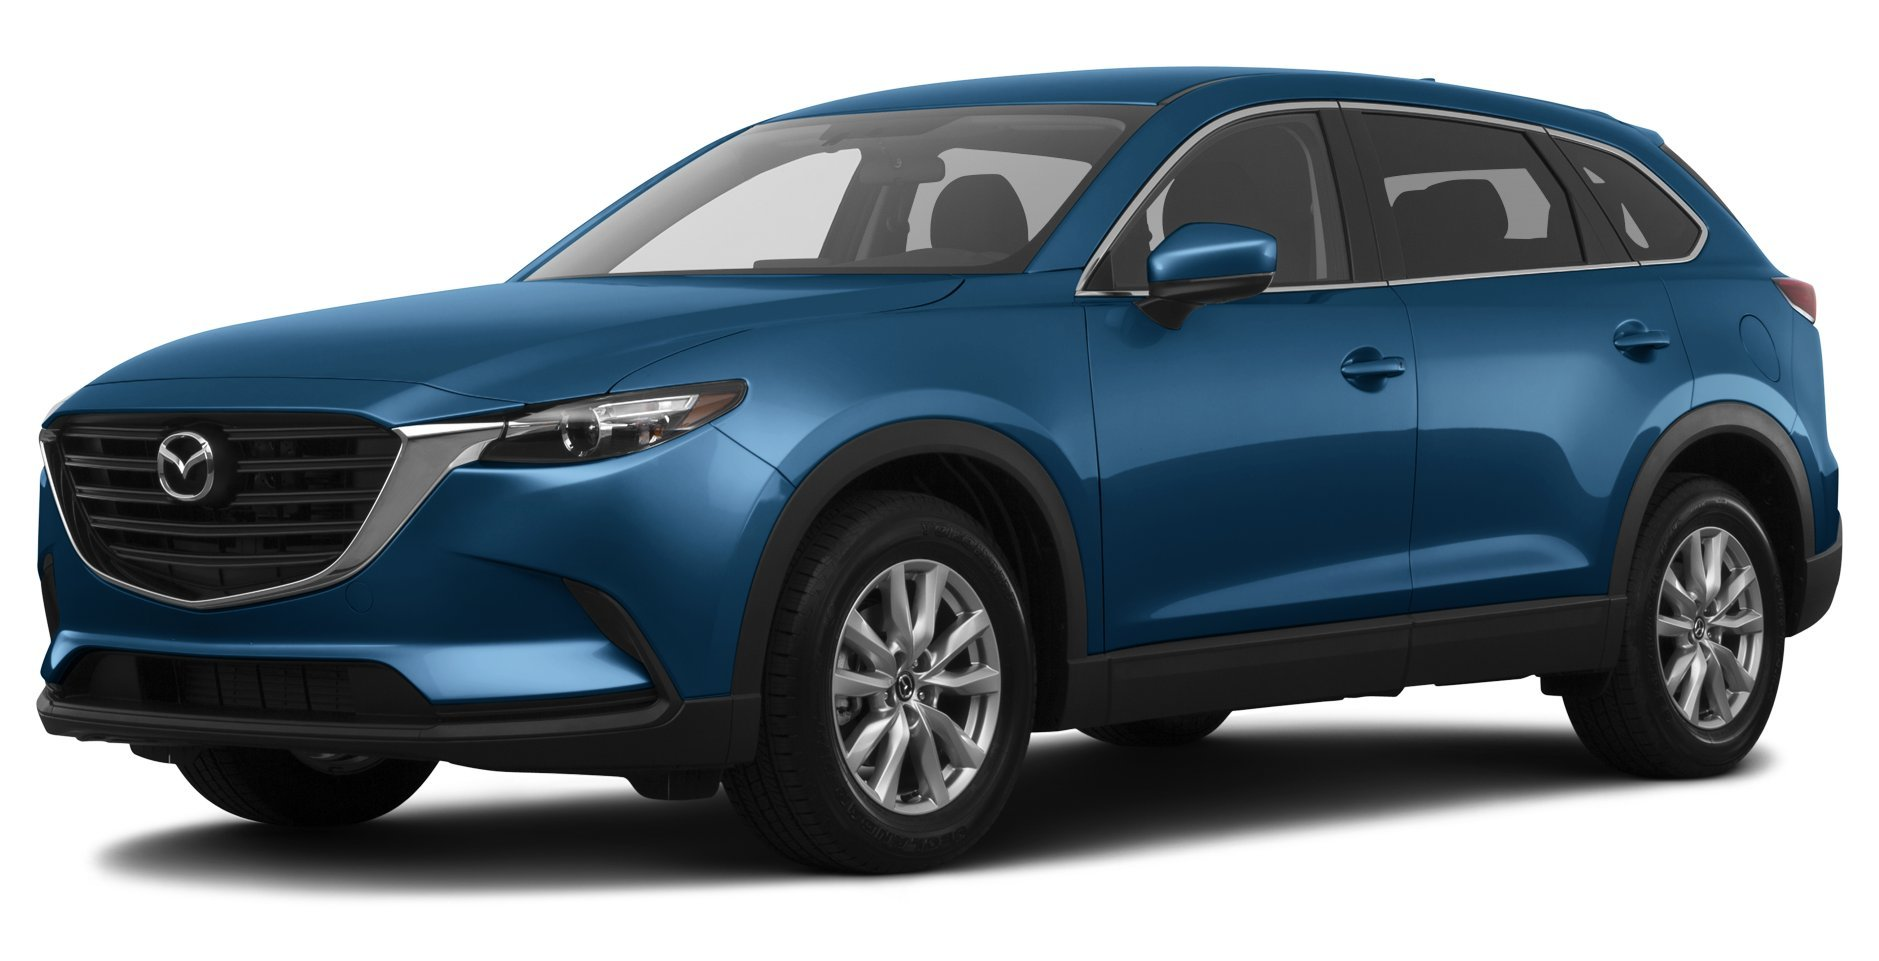 2016 mazda cx 9 reviews images and specs vehicles. Black Bedroom Furniture Sets. Home Design Ideas